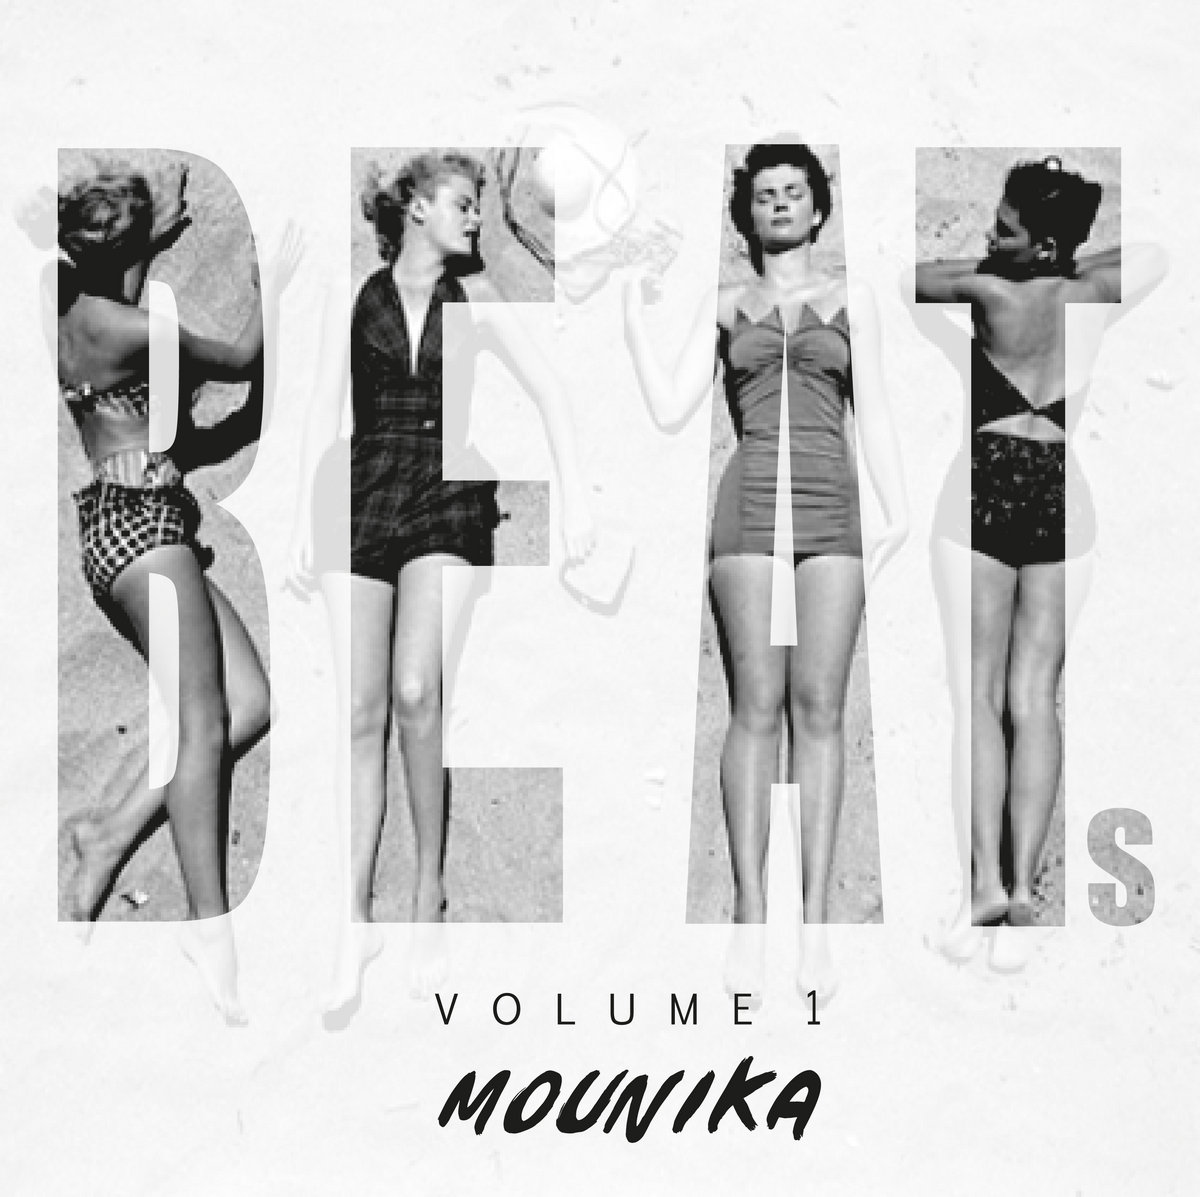 Mounika - Beats Volume 1 (2014) [Abstract Hip Hop]